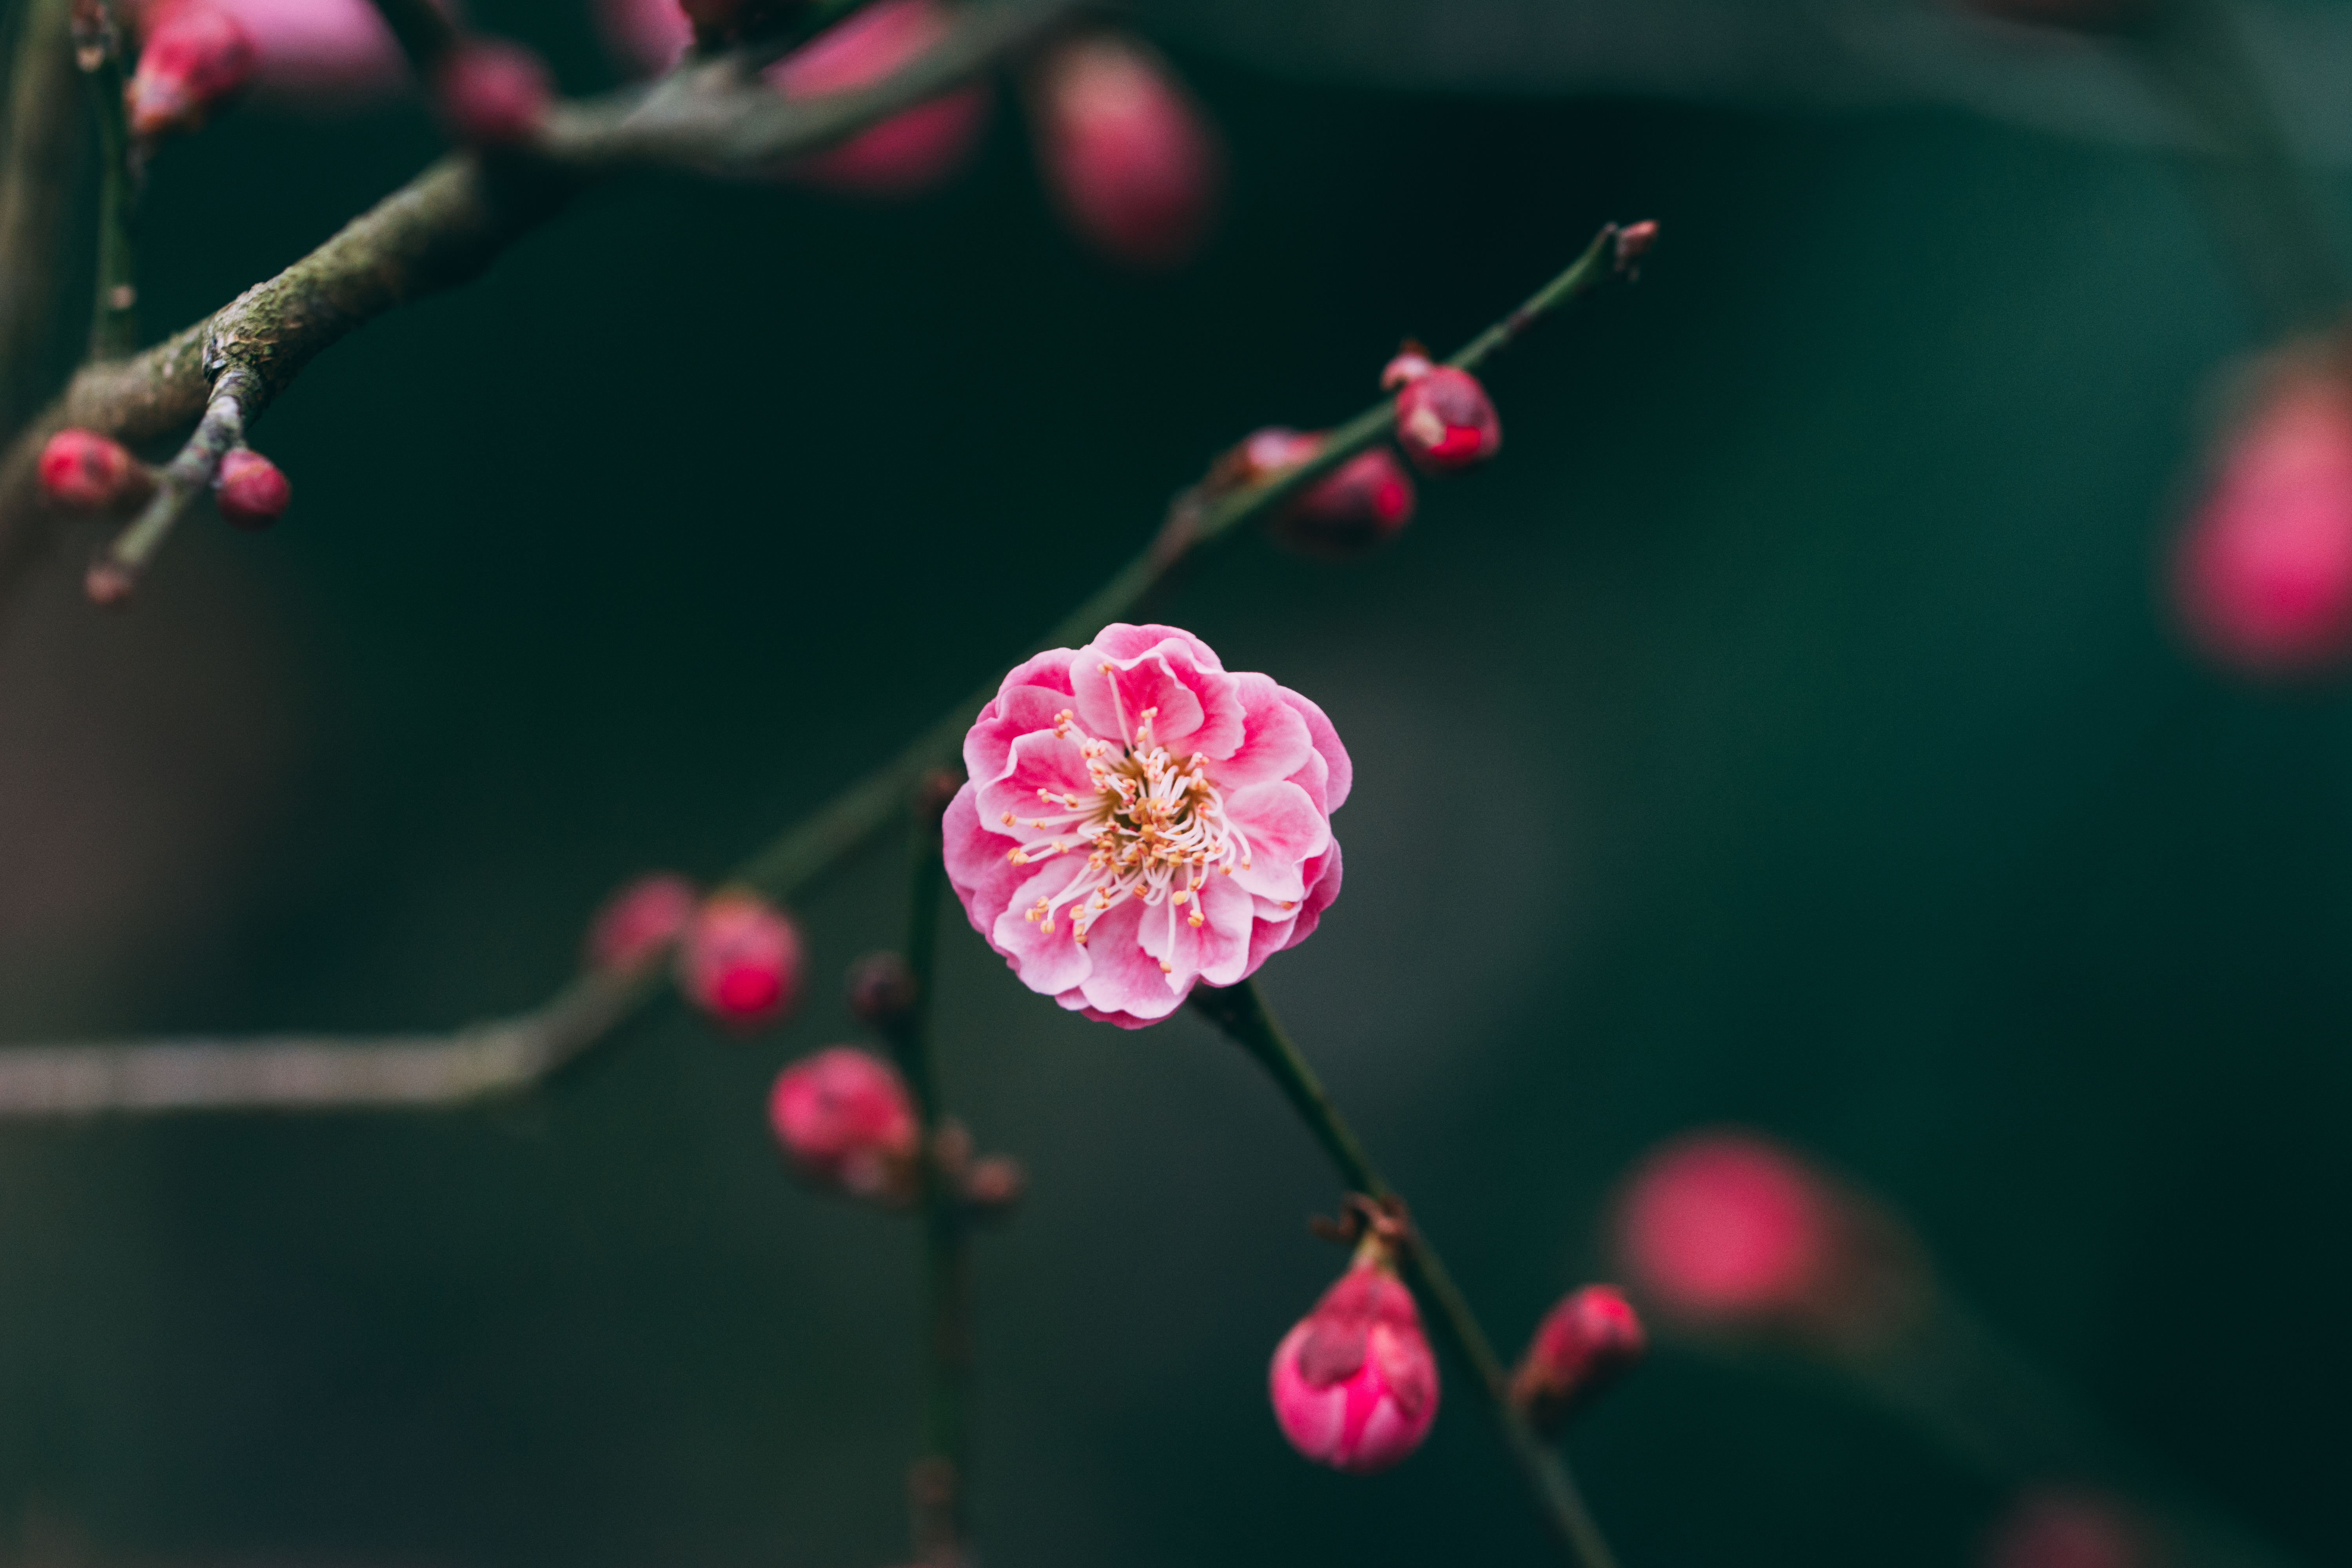 132756 download wallpaper Macro, Flower, Pink, Branches, Buds screensavers and pictures for free